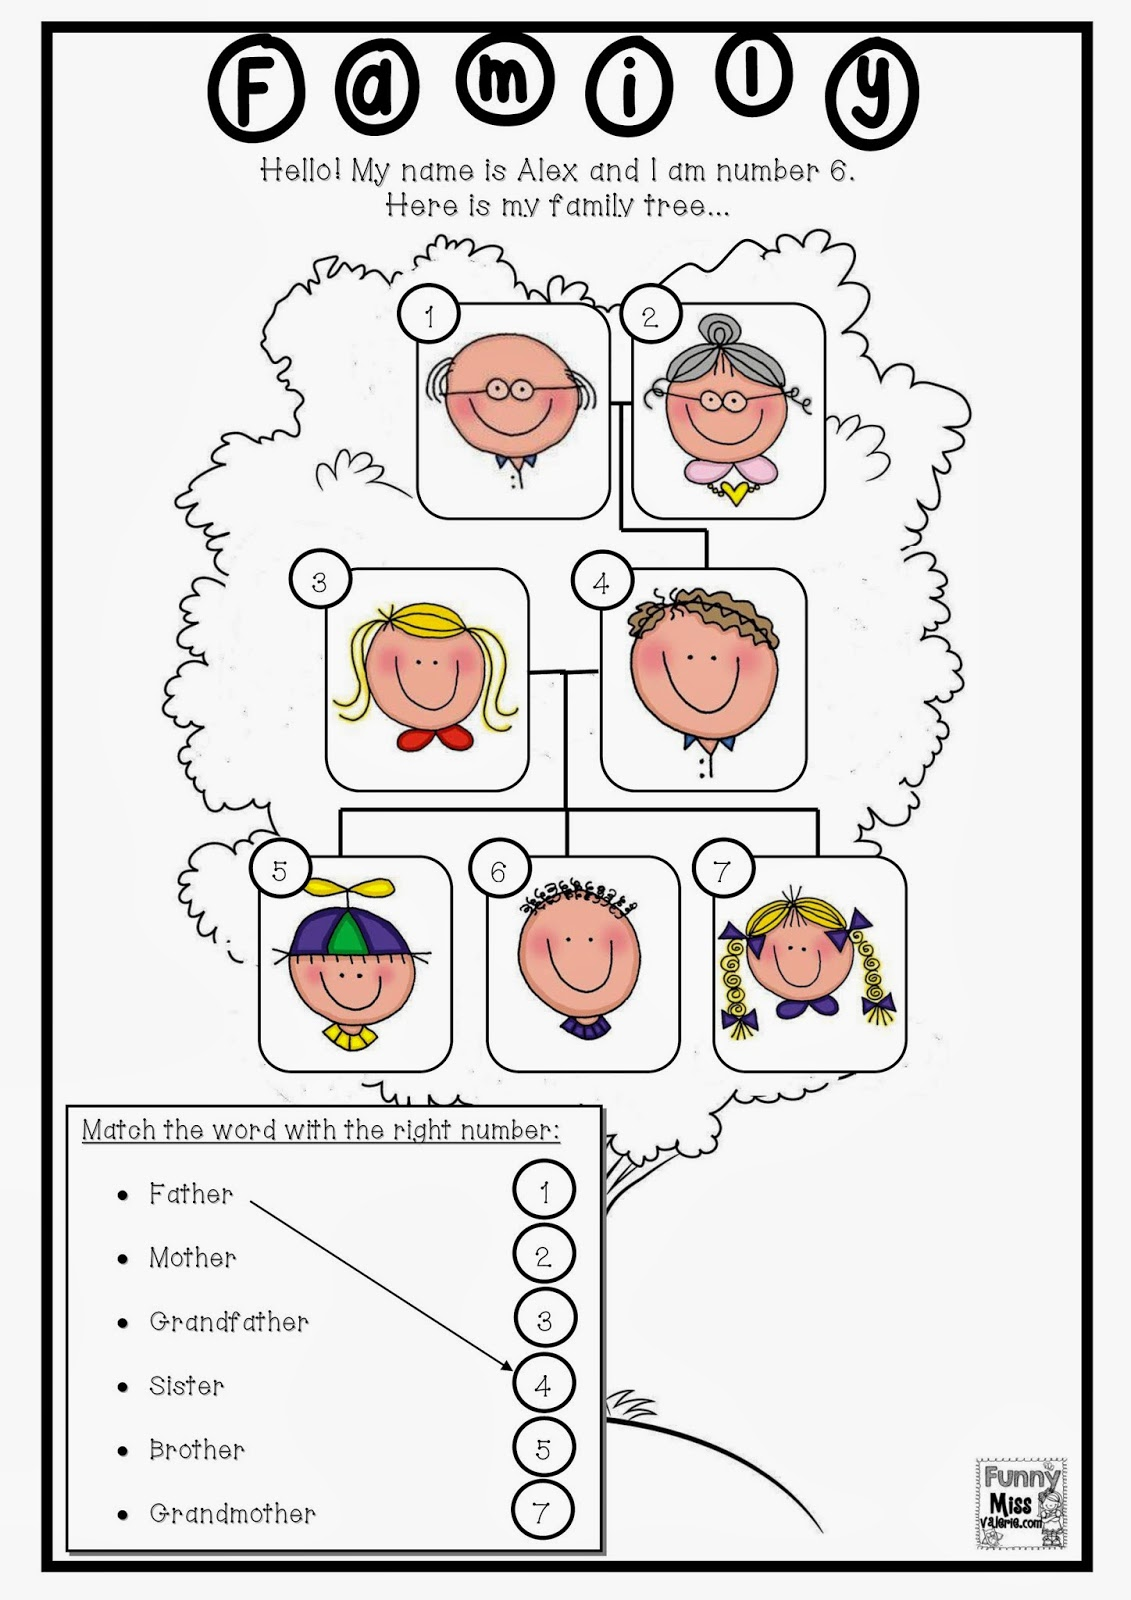 New 599 Family Tree Worksheets For Grade 1